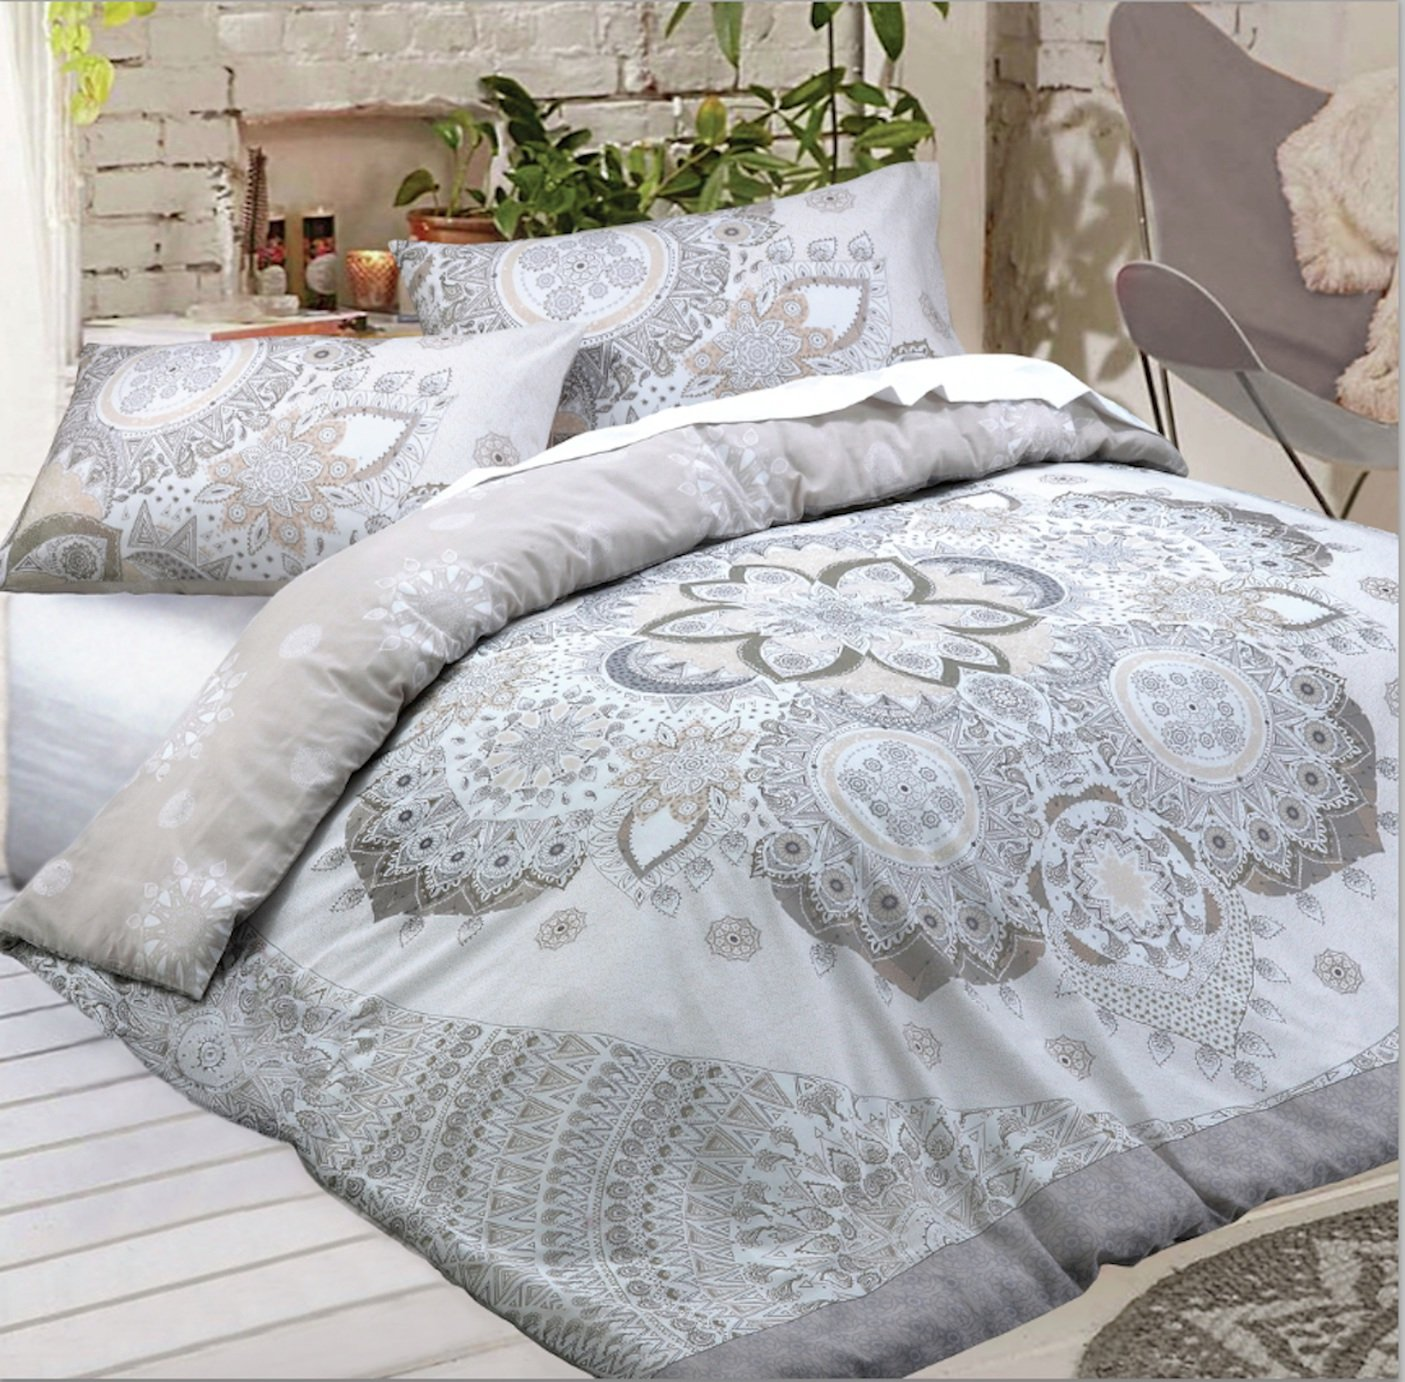 Argos Home Celestrial Mandala Bedding Set - Double